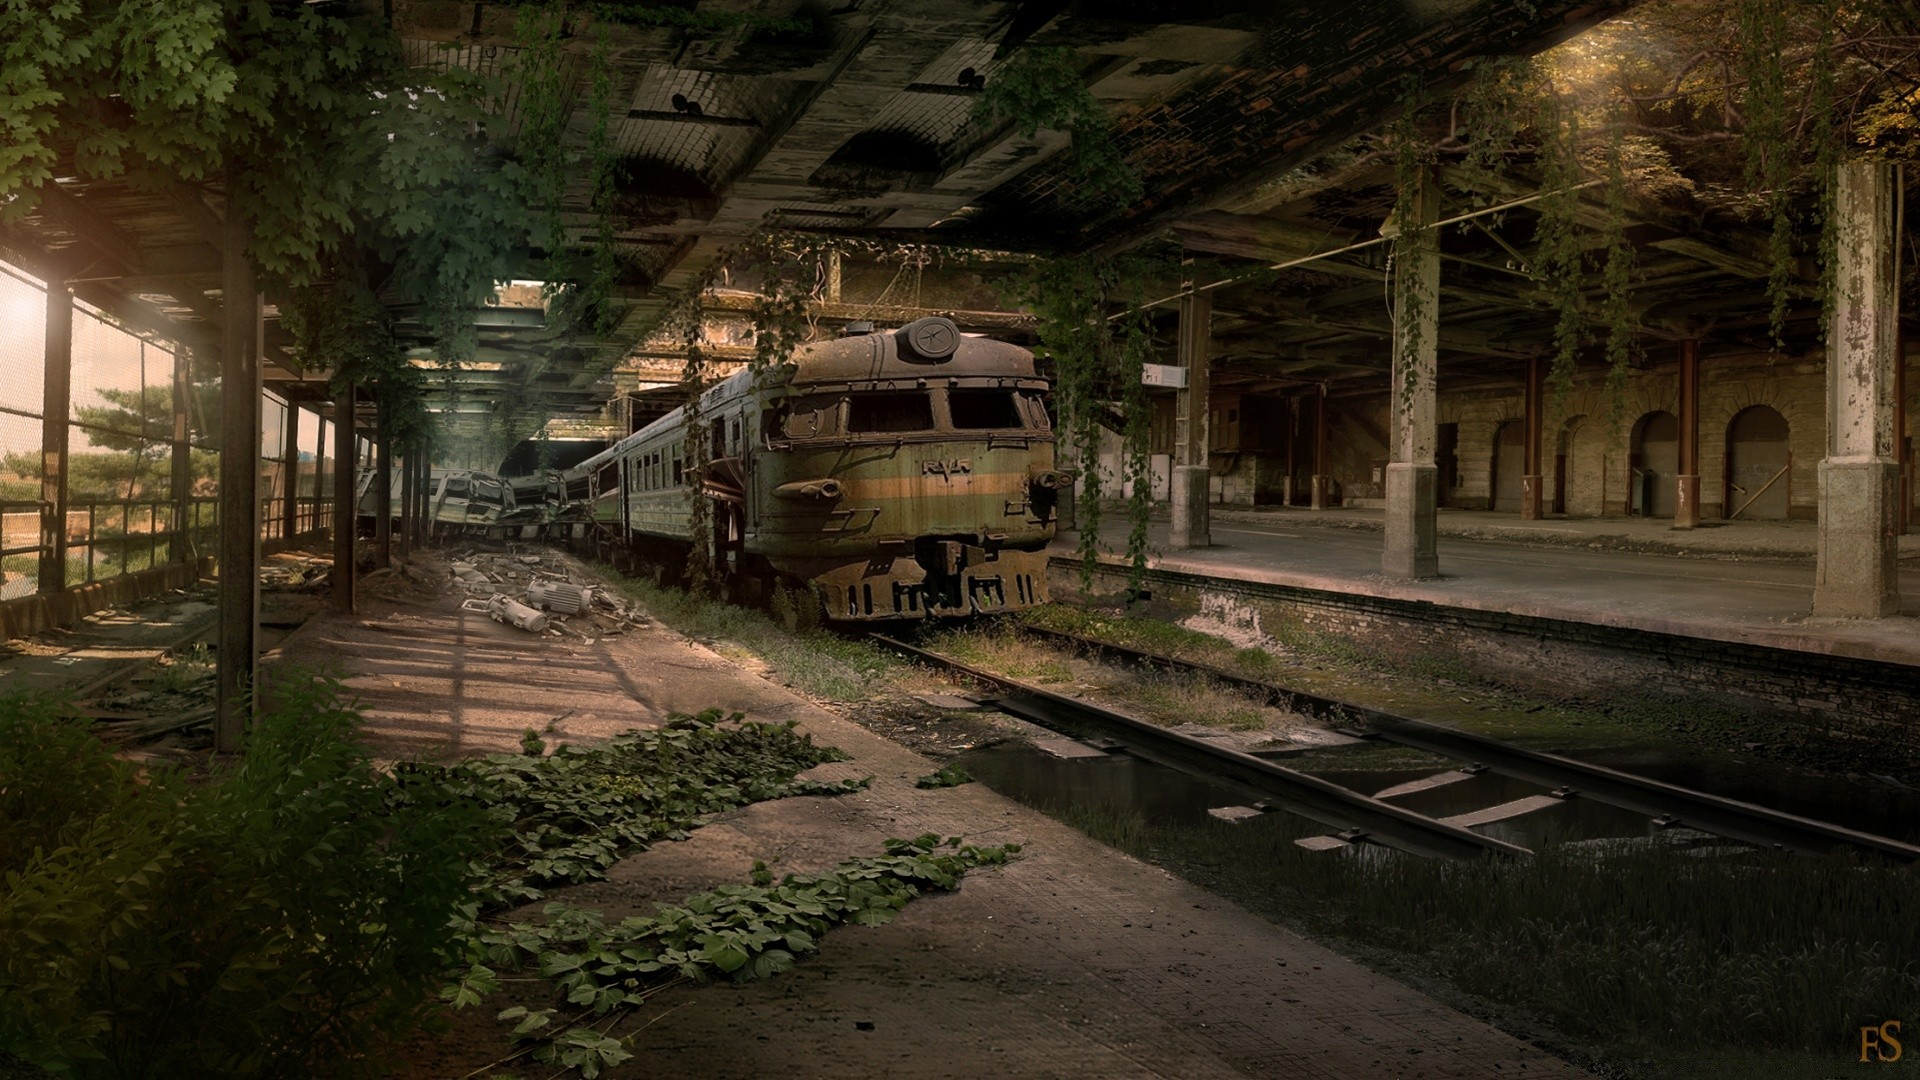 Urban Legend Train Car With Old Cars In It